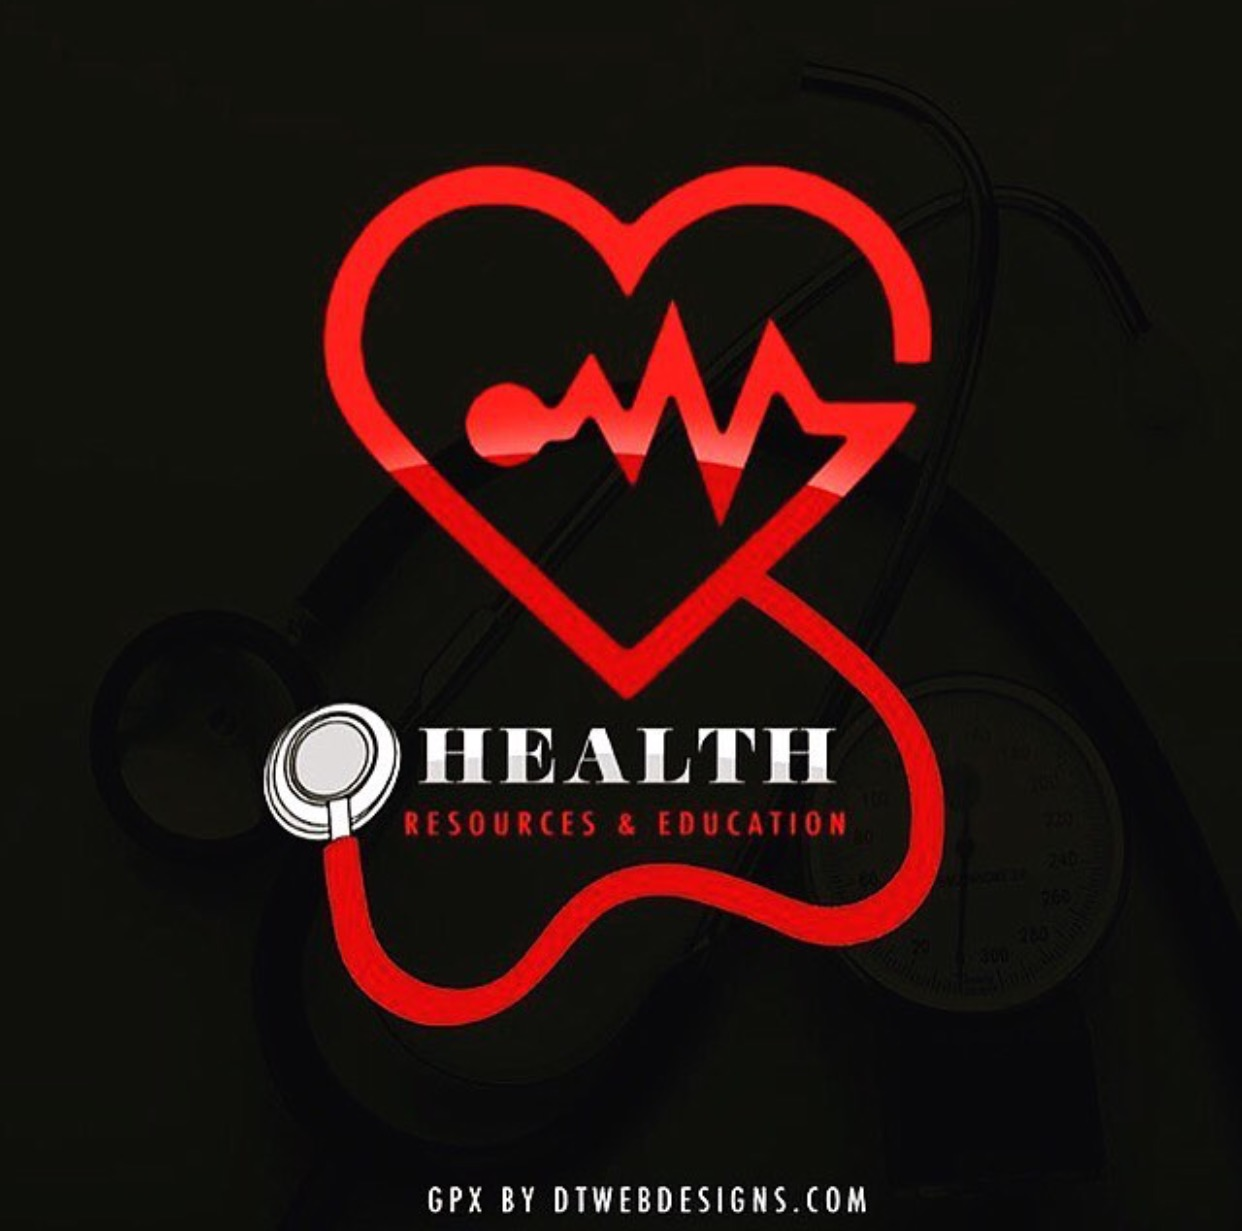 MEDICAL LOGO DEISGN